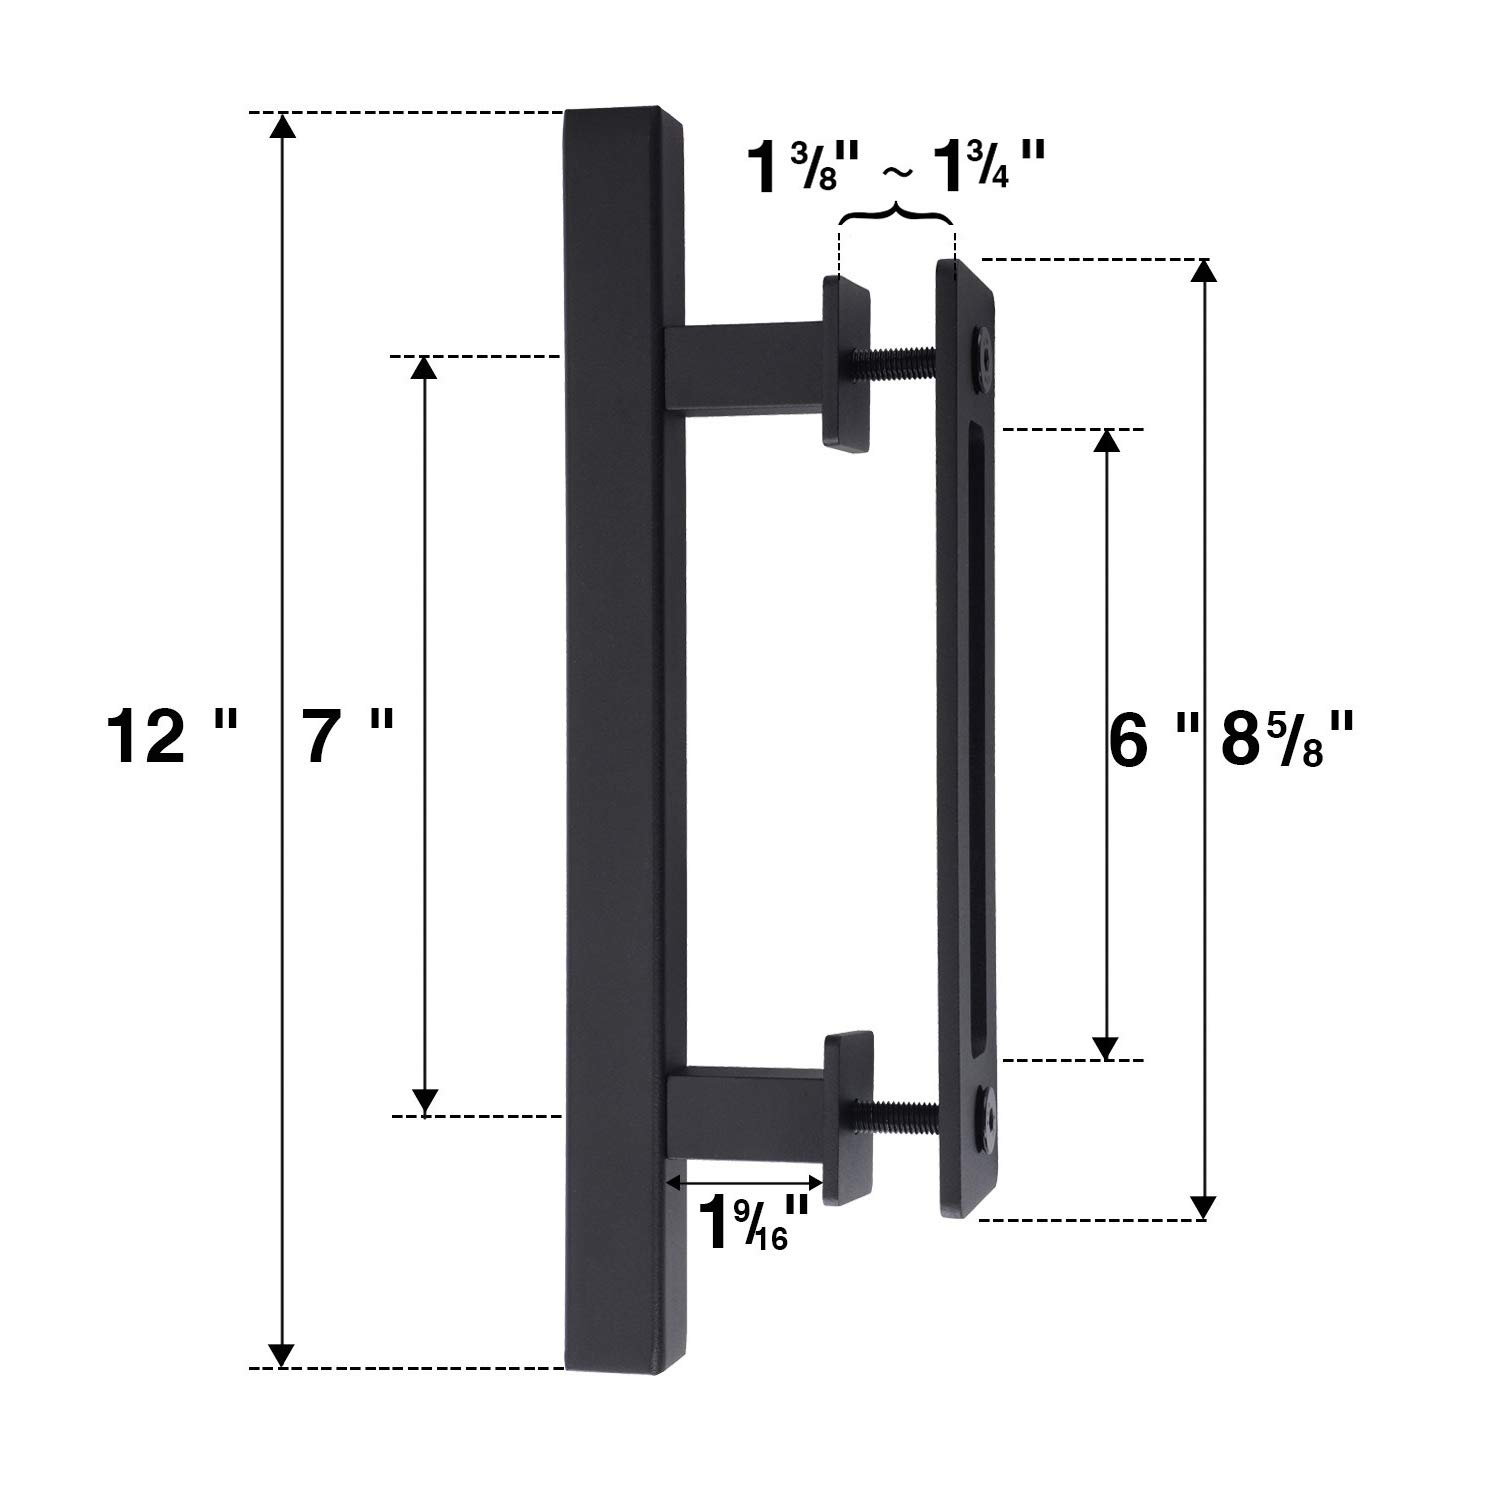 EaseLife 2Pcs 12'' Sliding Barn Door Handle with Pull Flush Set,for Gate Kitchen Furniture Cabinet Closet 2/Pack,Square by EaseLife (Image #5)